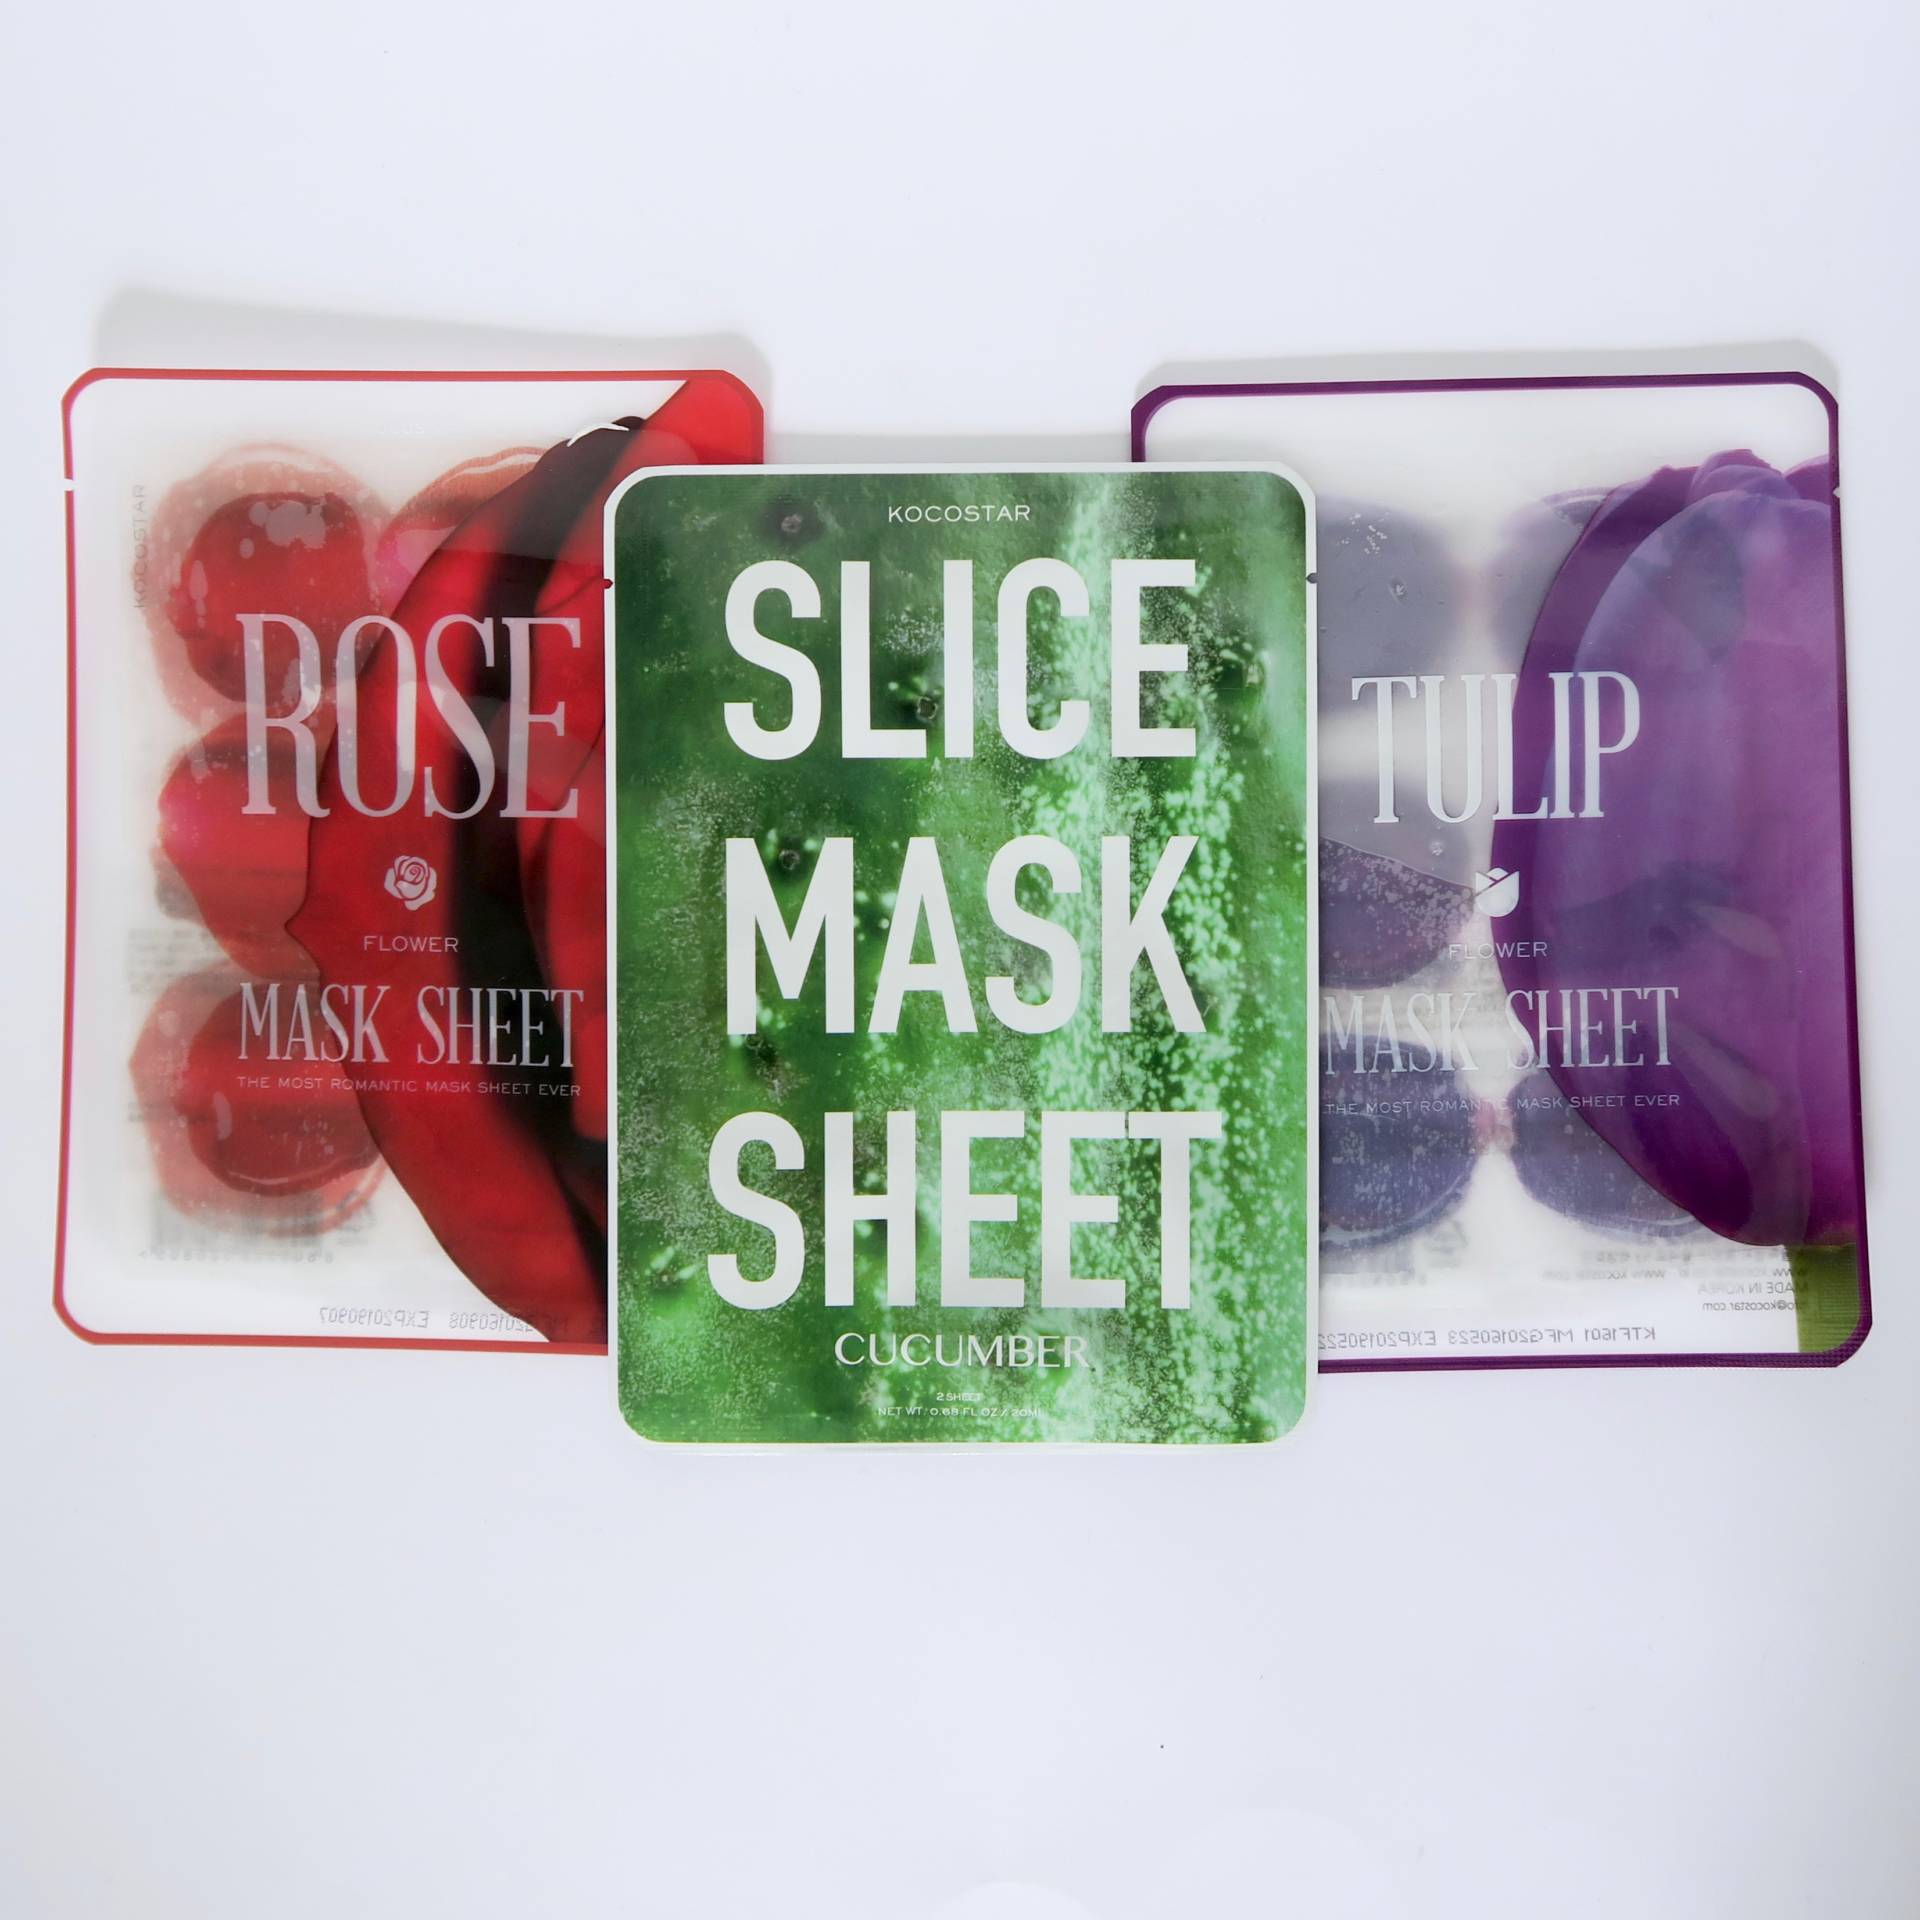 Next Generation Masks - individual sheet mask pieces for a truly tailored face mask experience